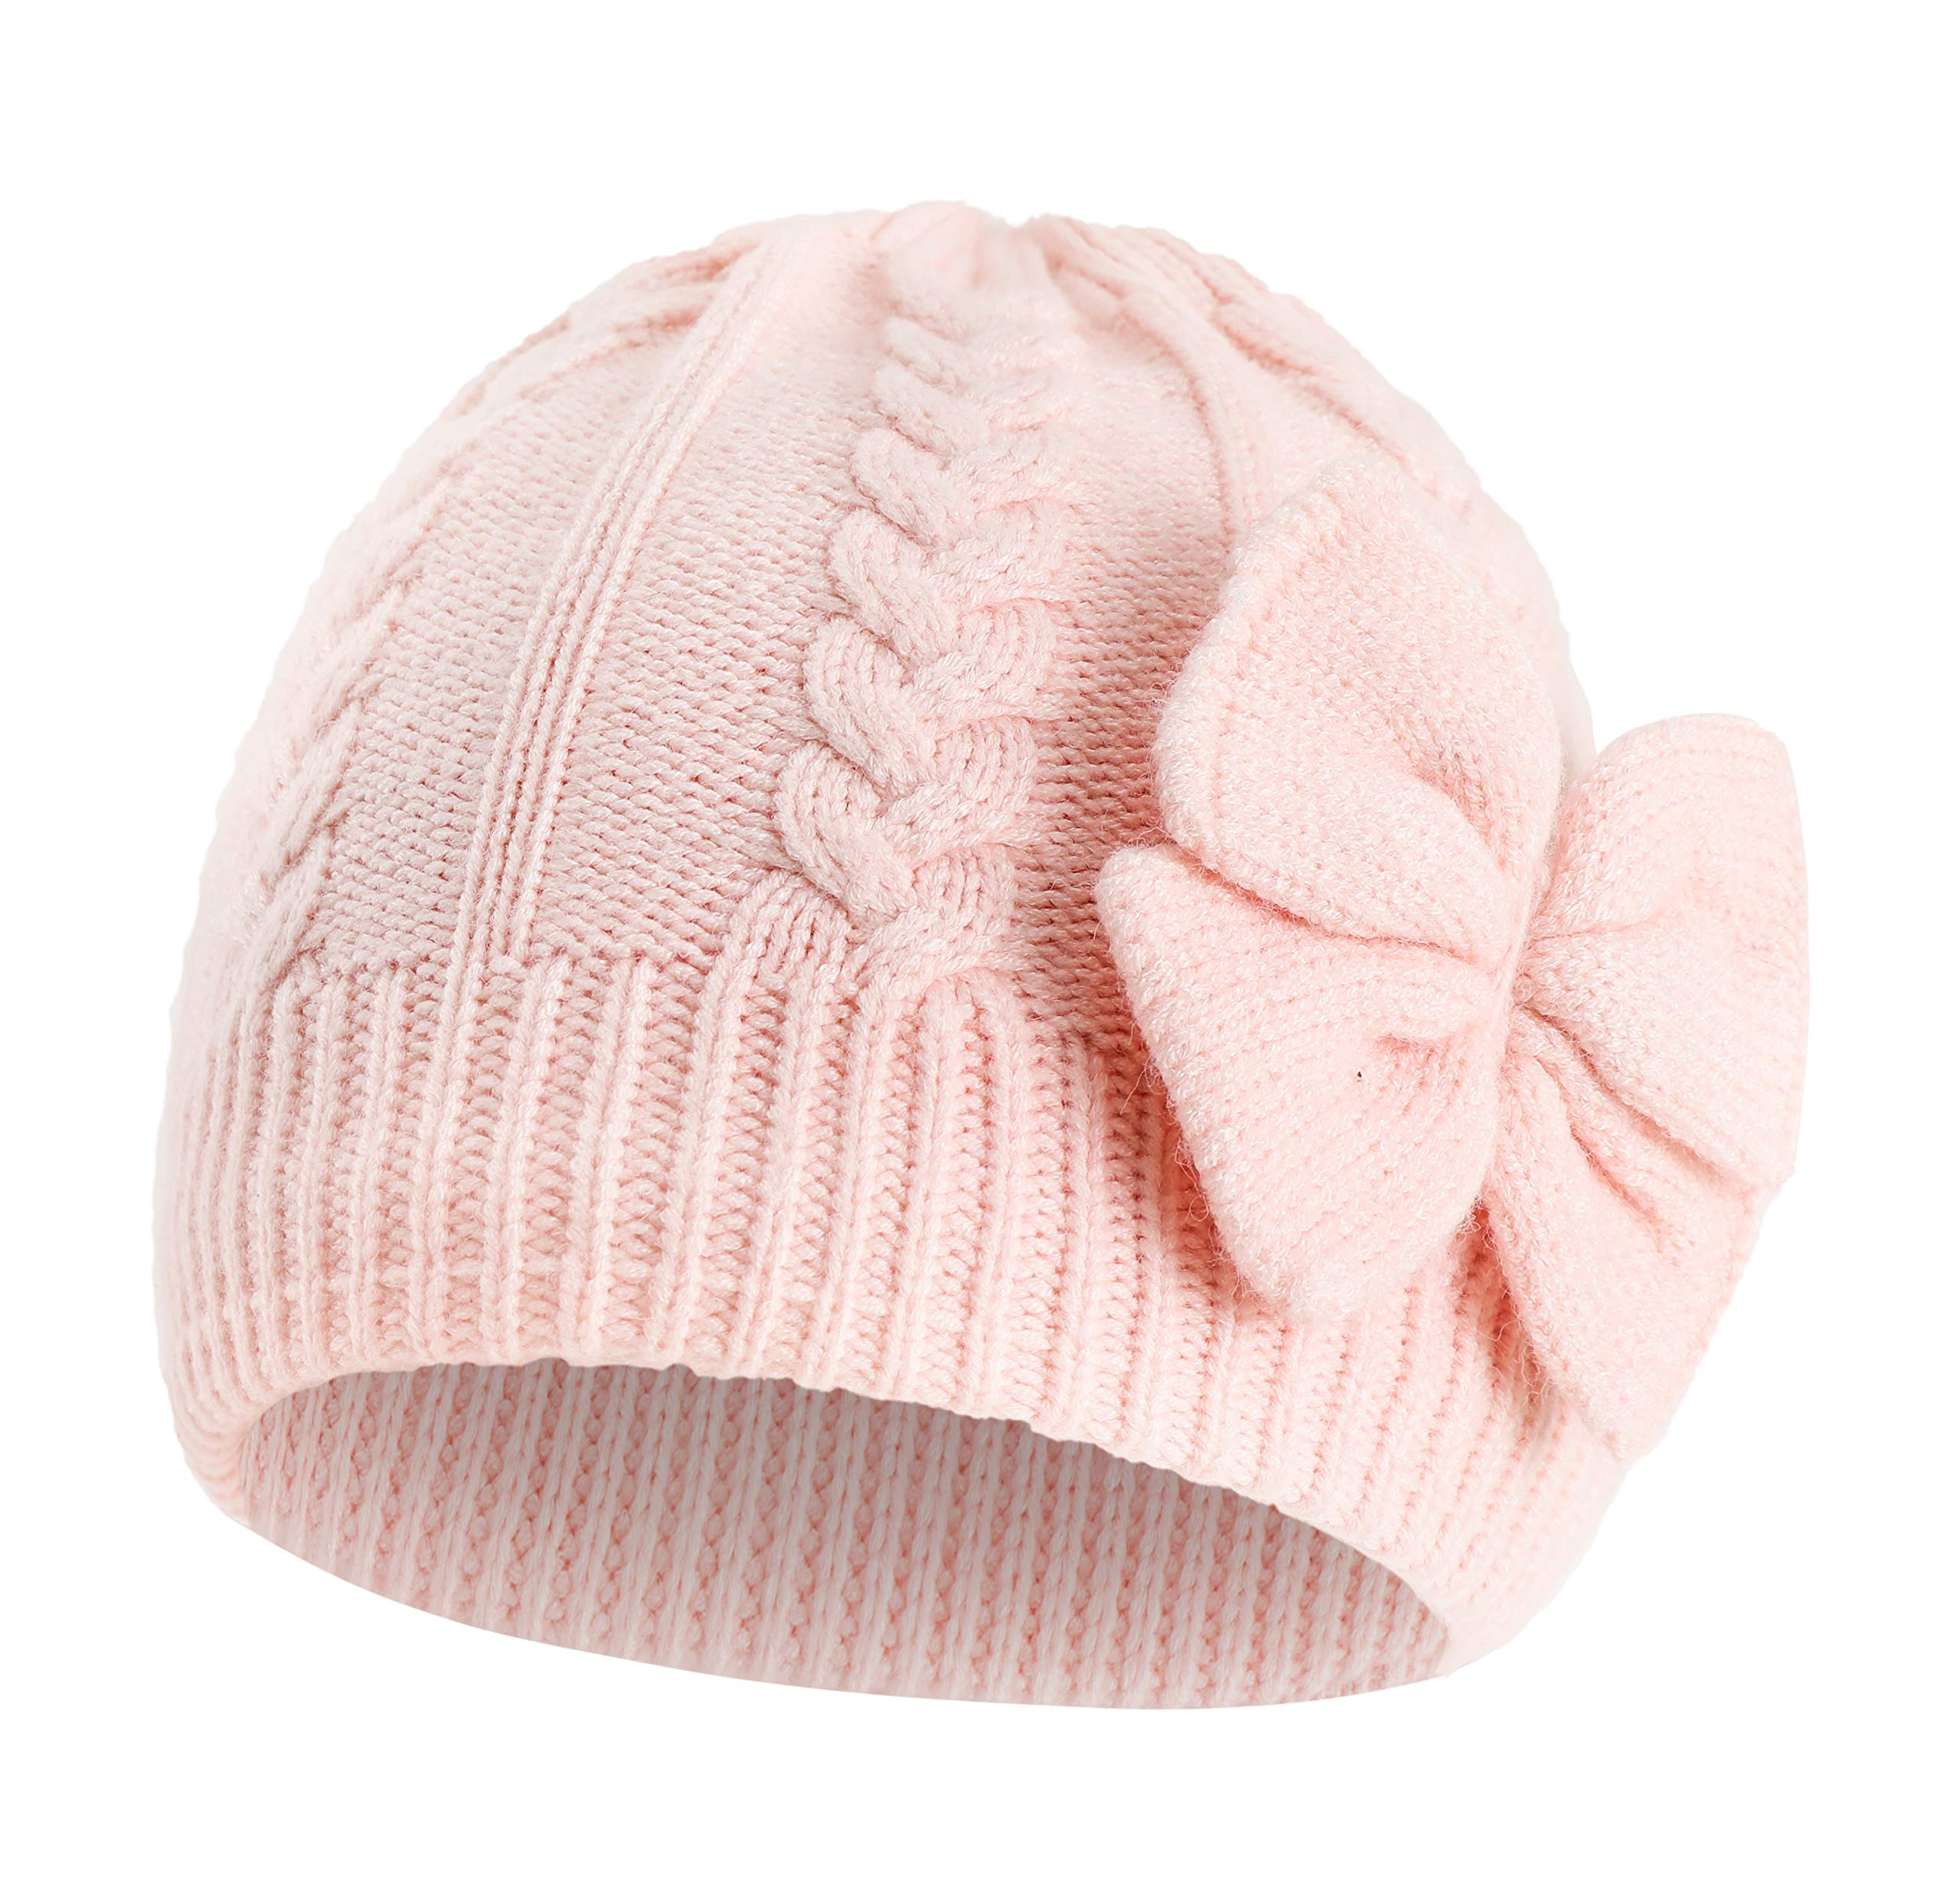 Jiaqee Winter Knitted Toddler Classic